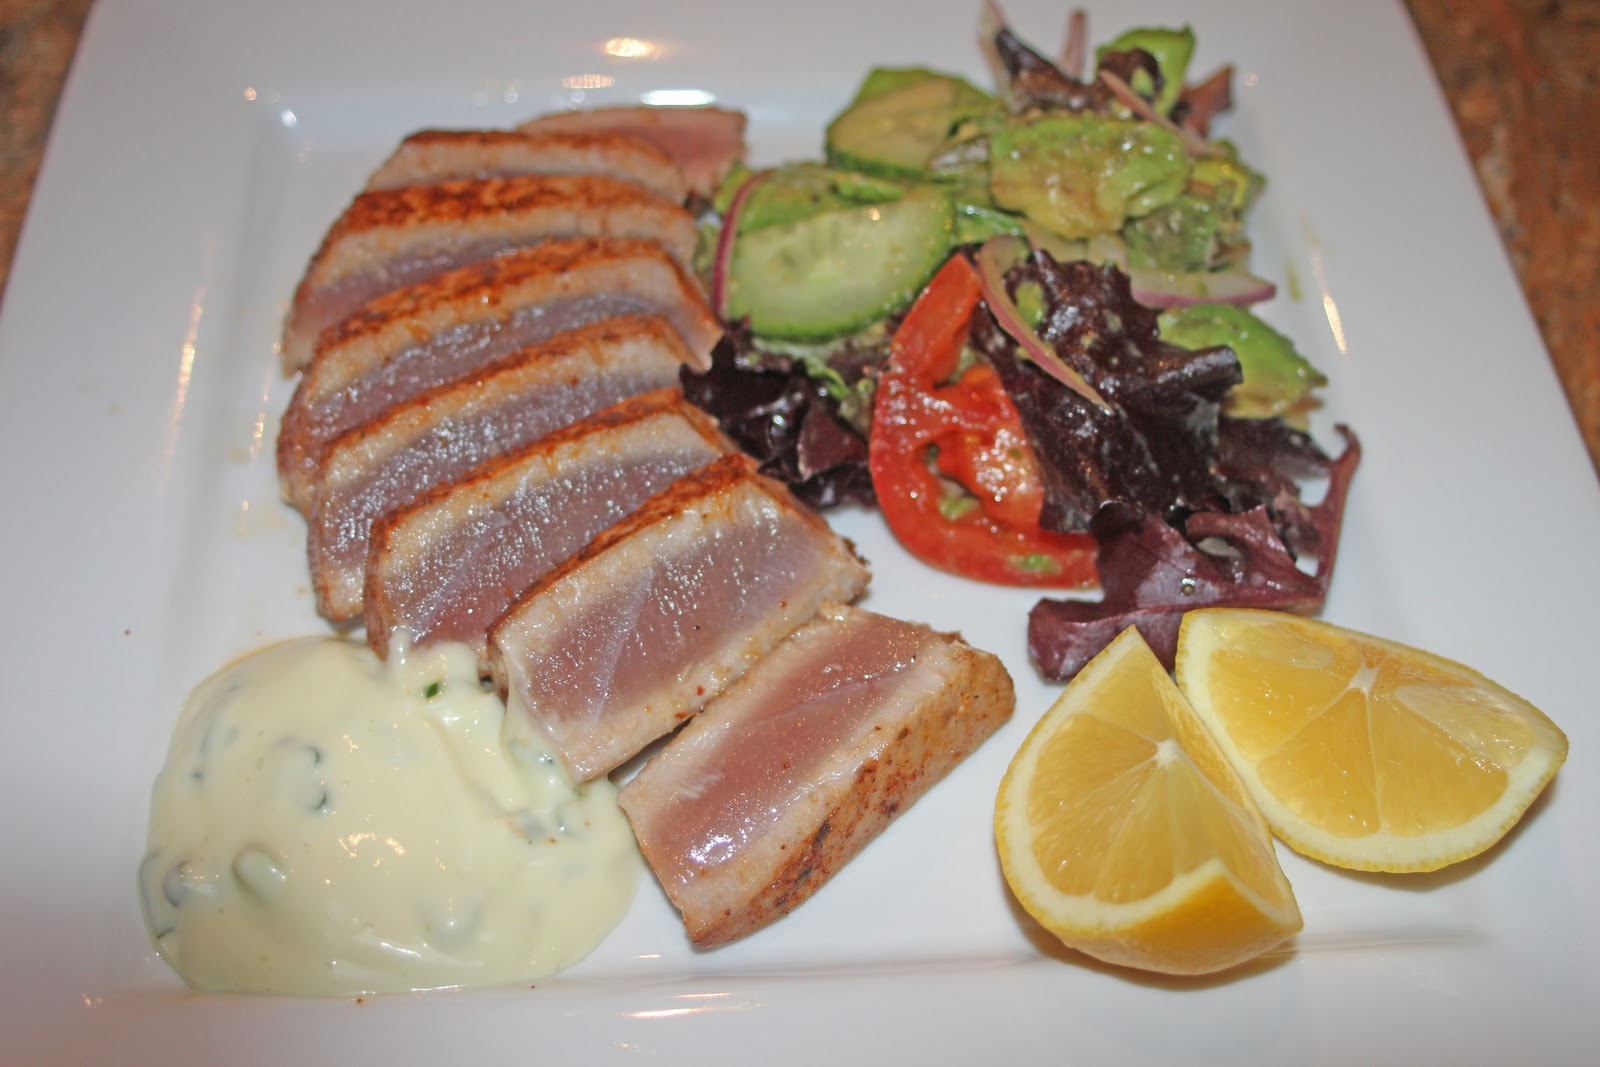 ... with Camissonia: Seared Ahi Tuna with Wasabi-Honey Mayonnaise Sauce